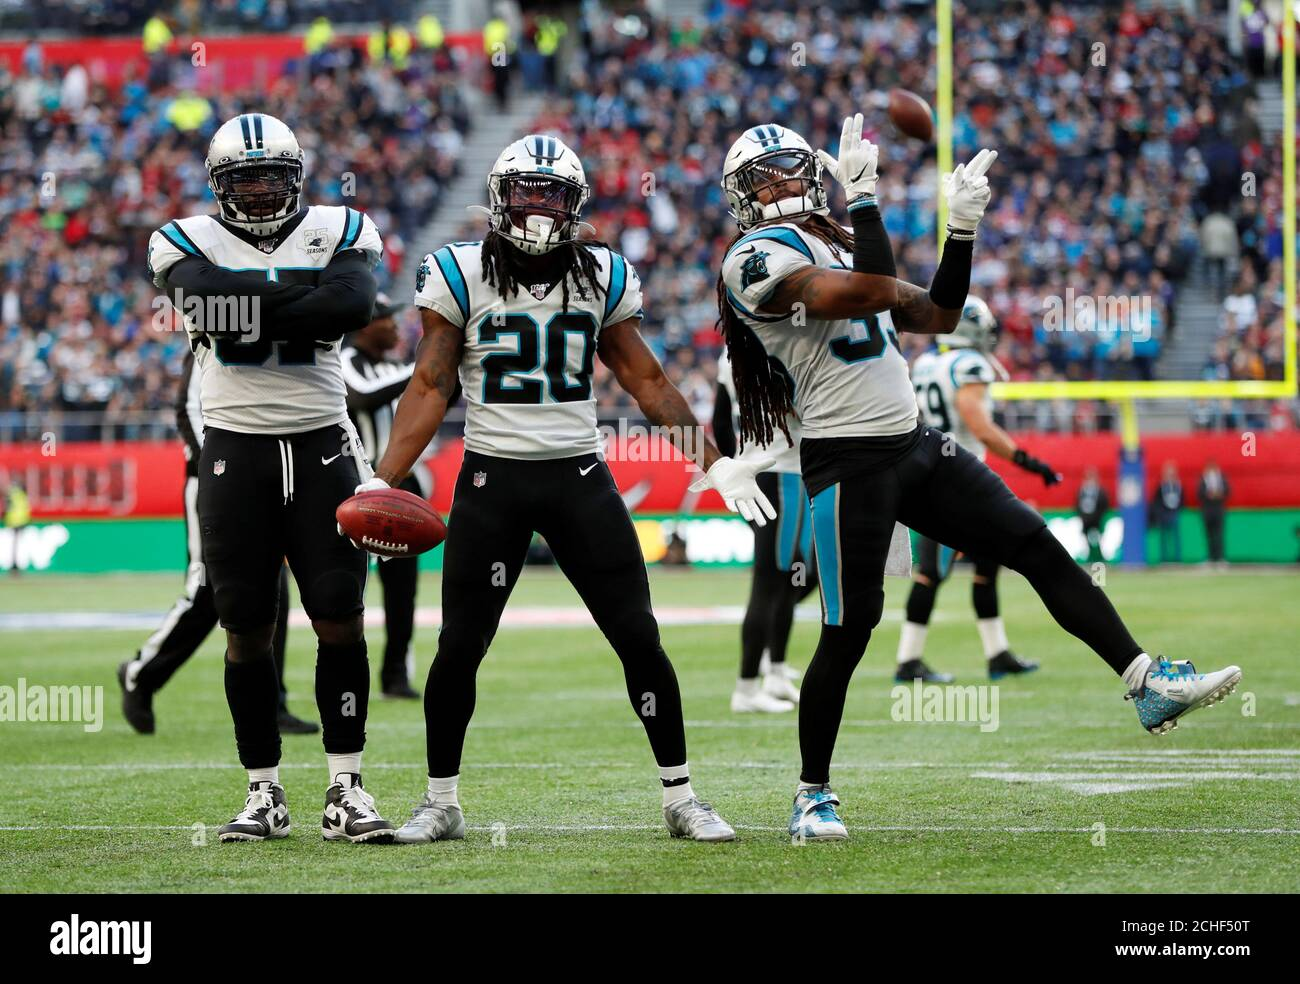 Andre Smith High Resolution Stock Photography and Images - Alamy